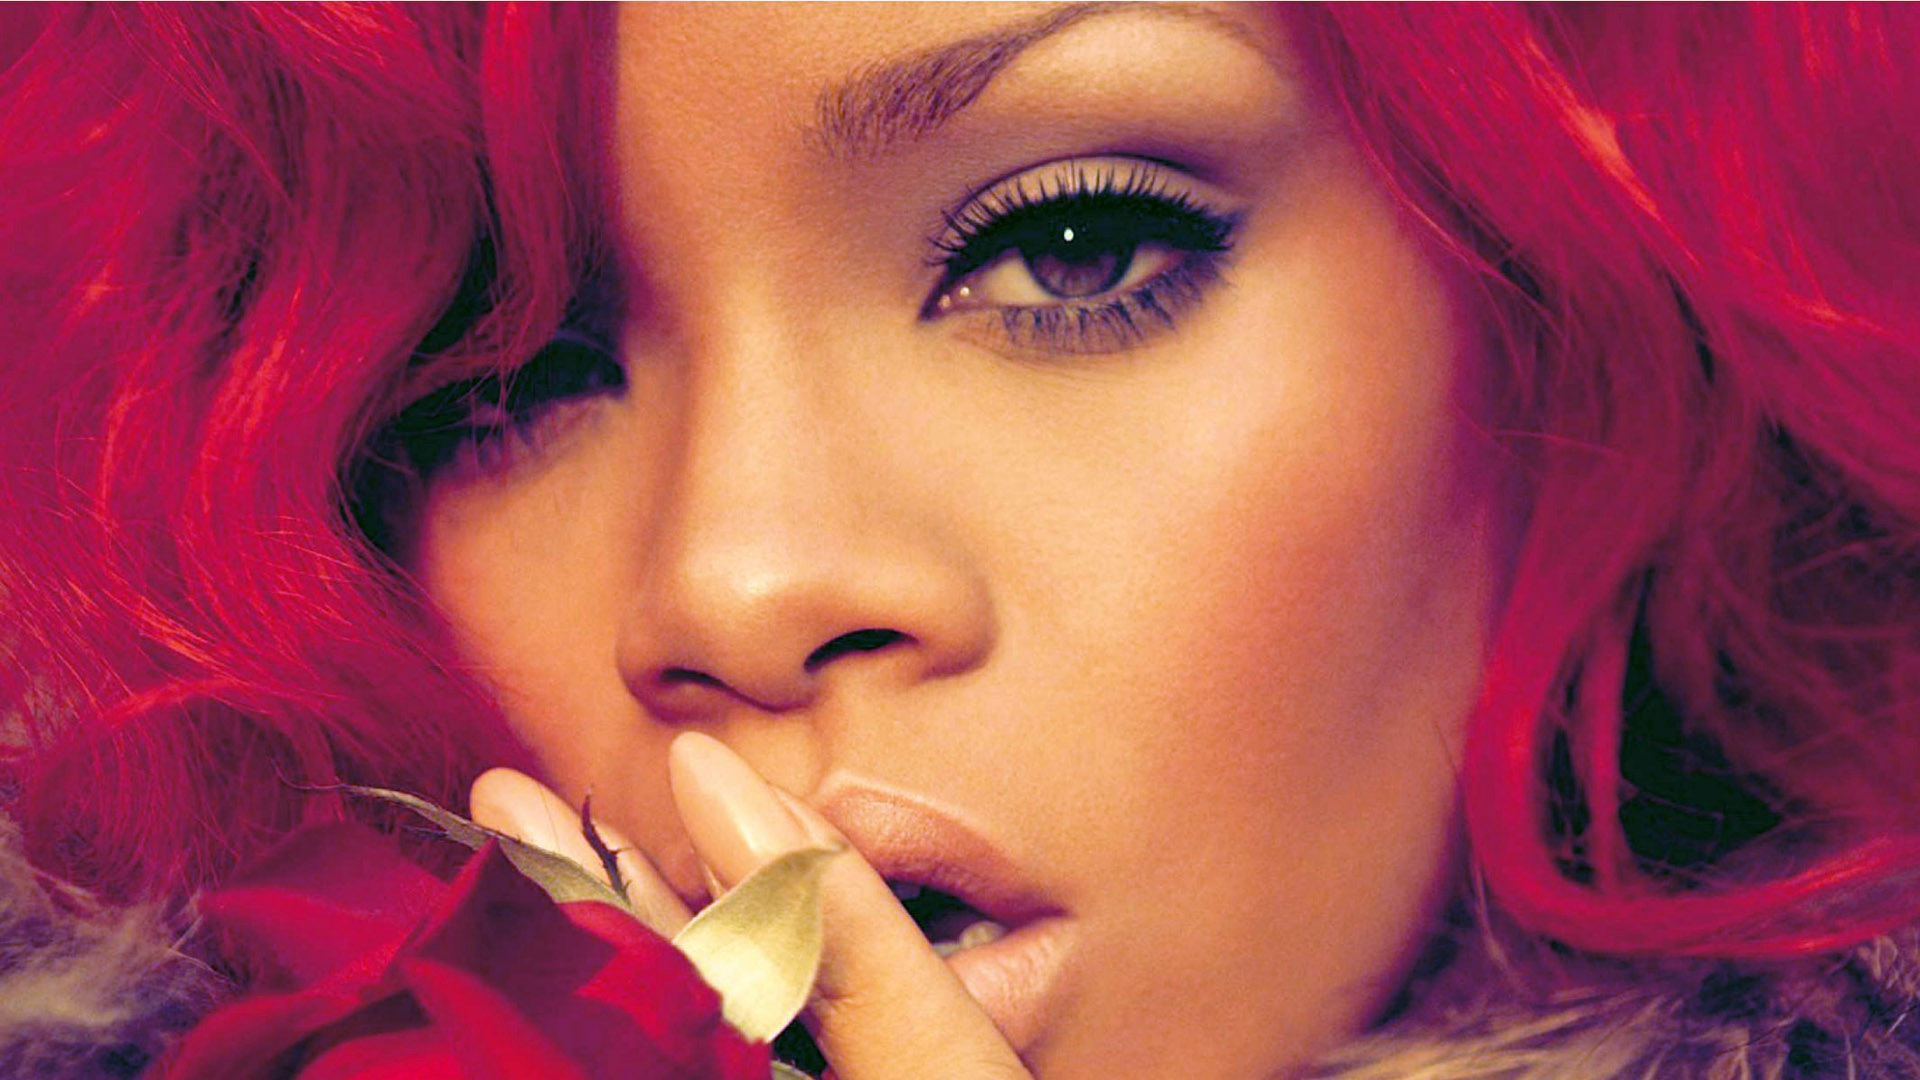 rihanna wallpapers, pictures, images